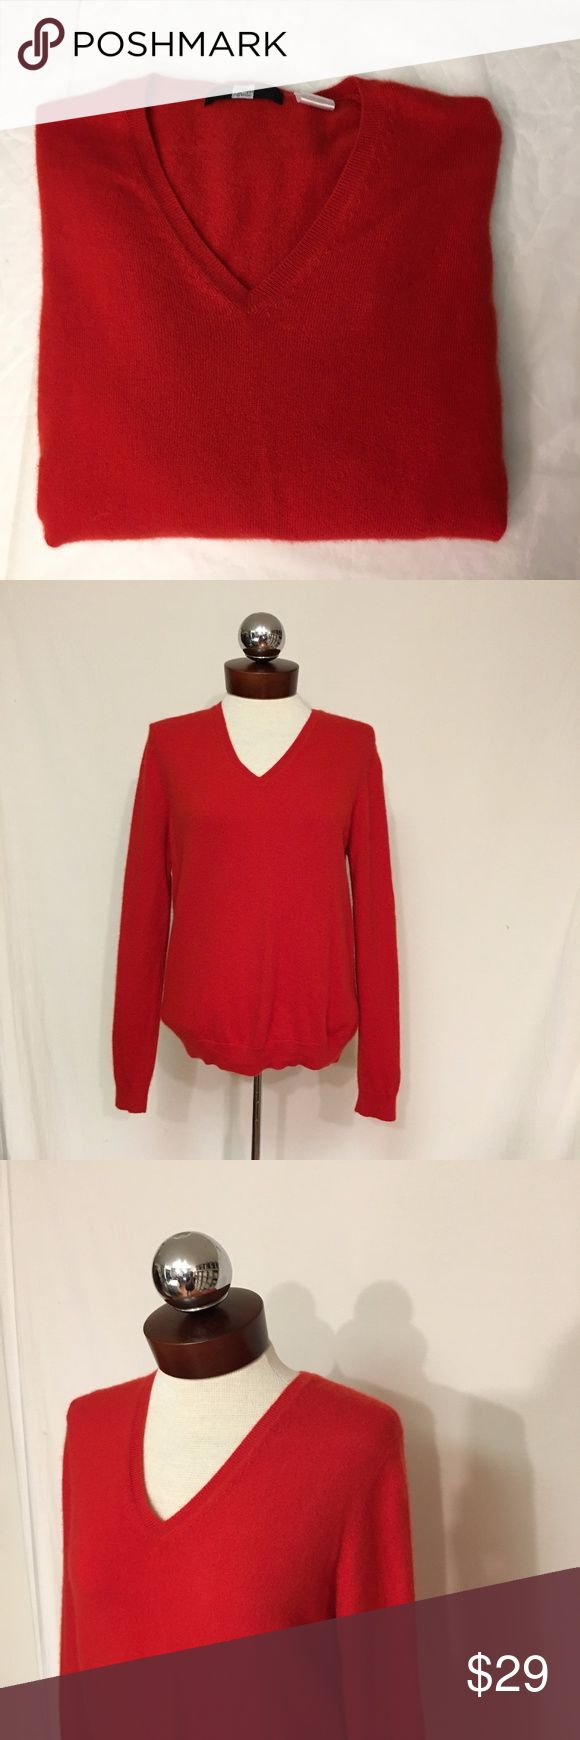 SAKS FIFTH AVENUE 100% cashmere solid red v neck minimal wear with no rips, stains, flaws, etc.   100% cashmere  Bust 36  Length 23 Saks Fifth Avenue Sweaters V-Necks